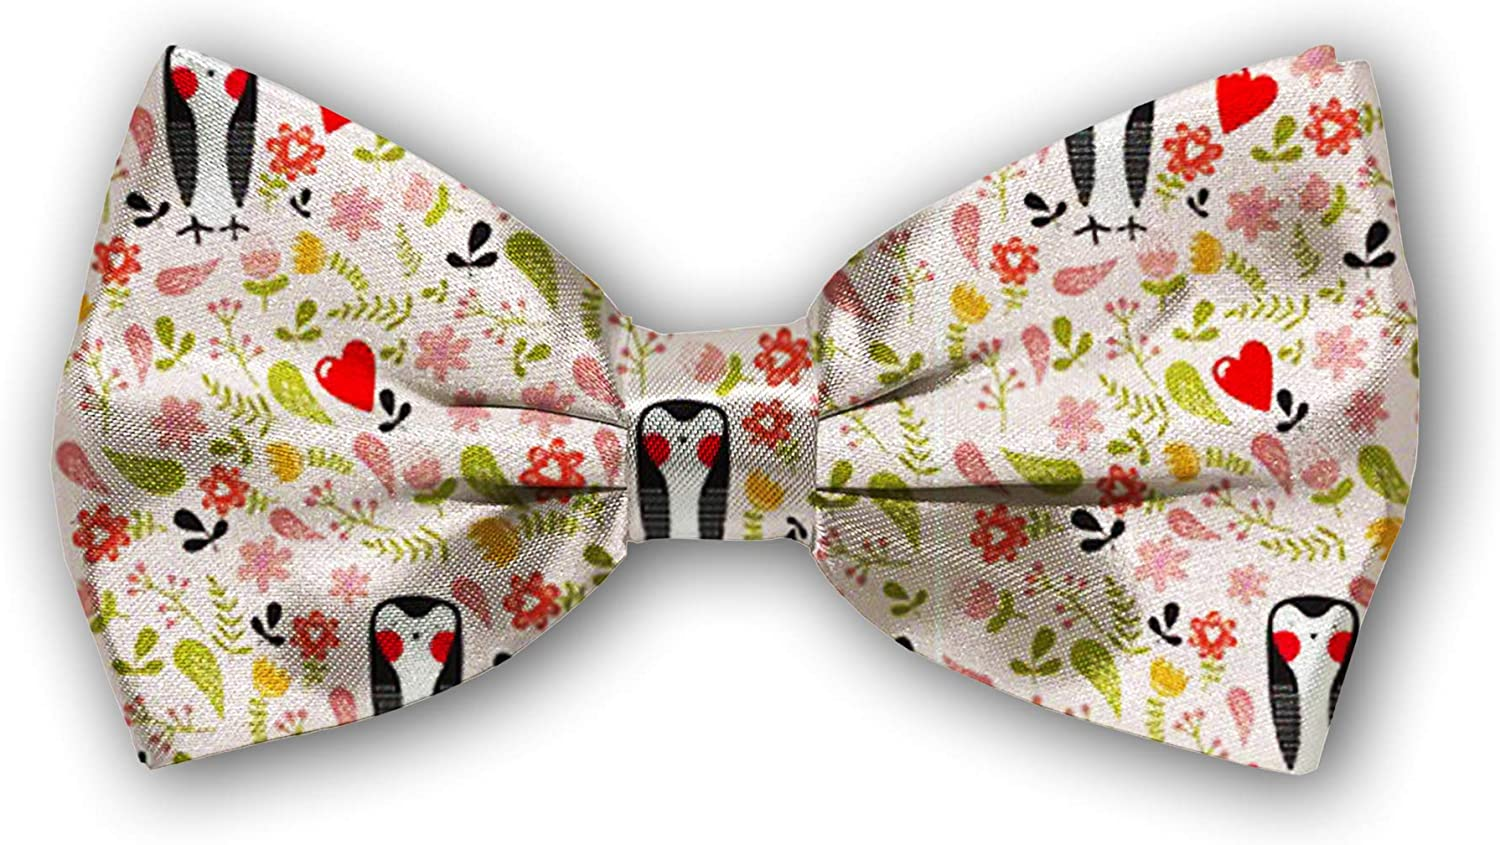 Max 85% OFF Bow Tie Tuxedo Butterfly Cotton Memphis Mall Adjustable Boys Mens Bowtie for